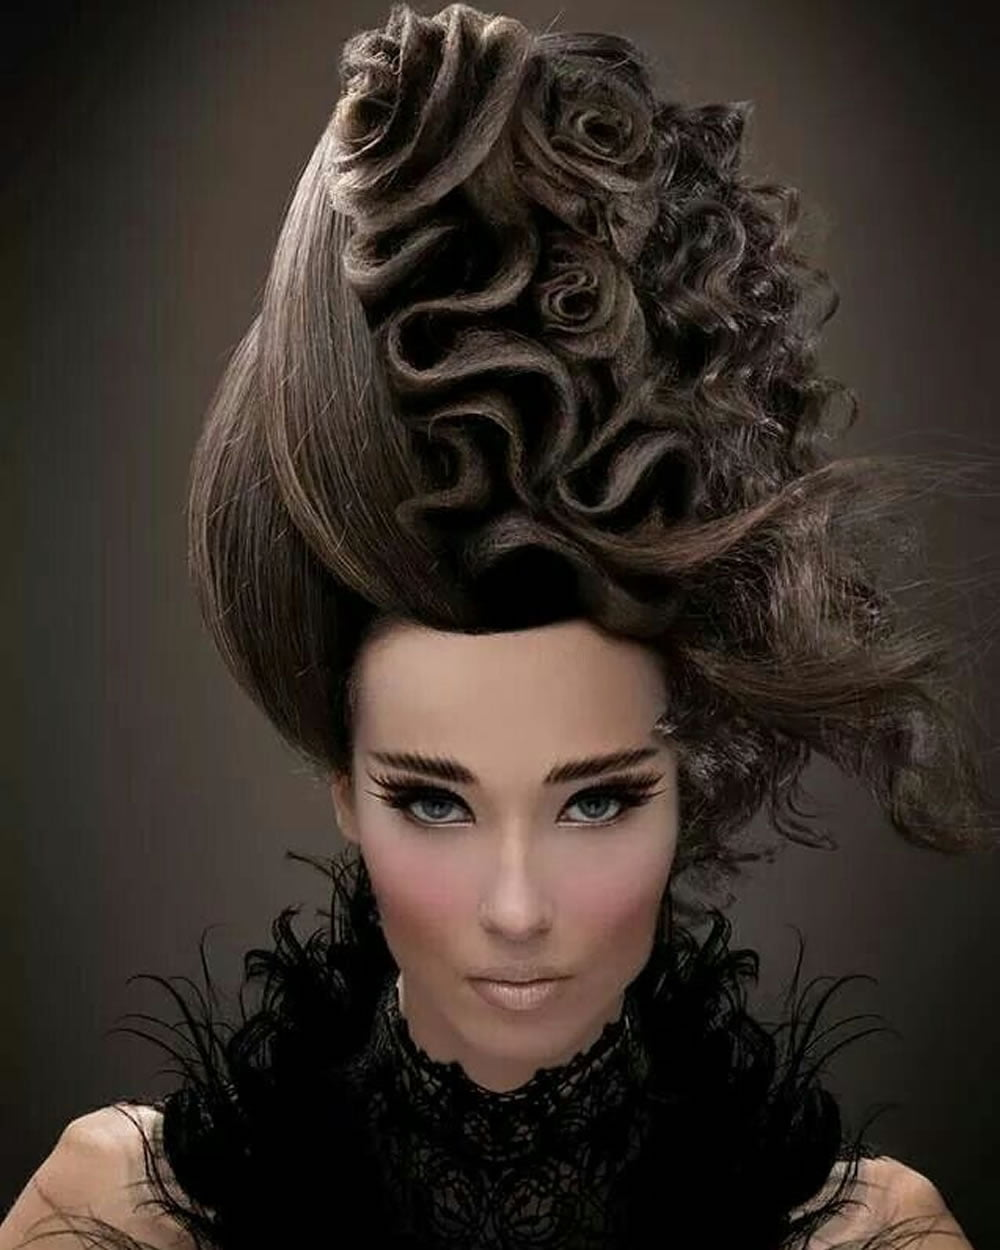 10 Crazy and Weird Hairstyles forecasting